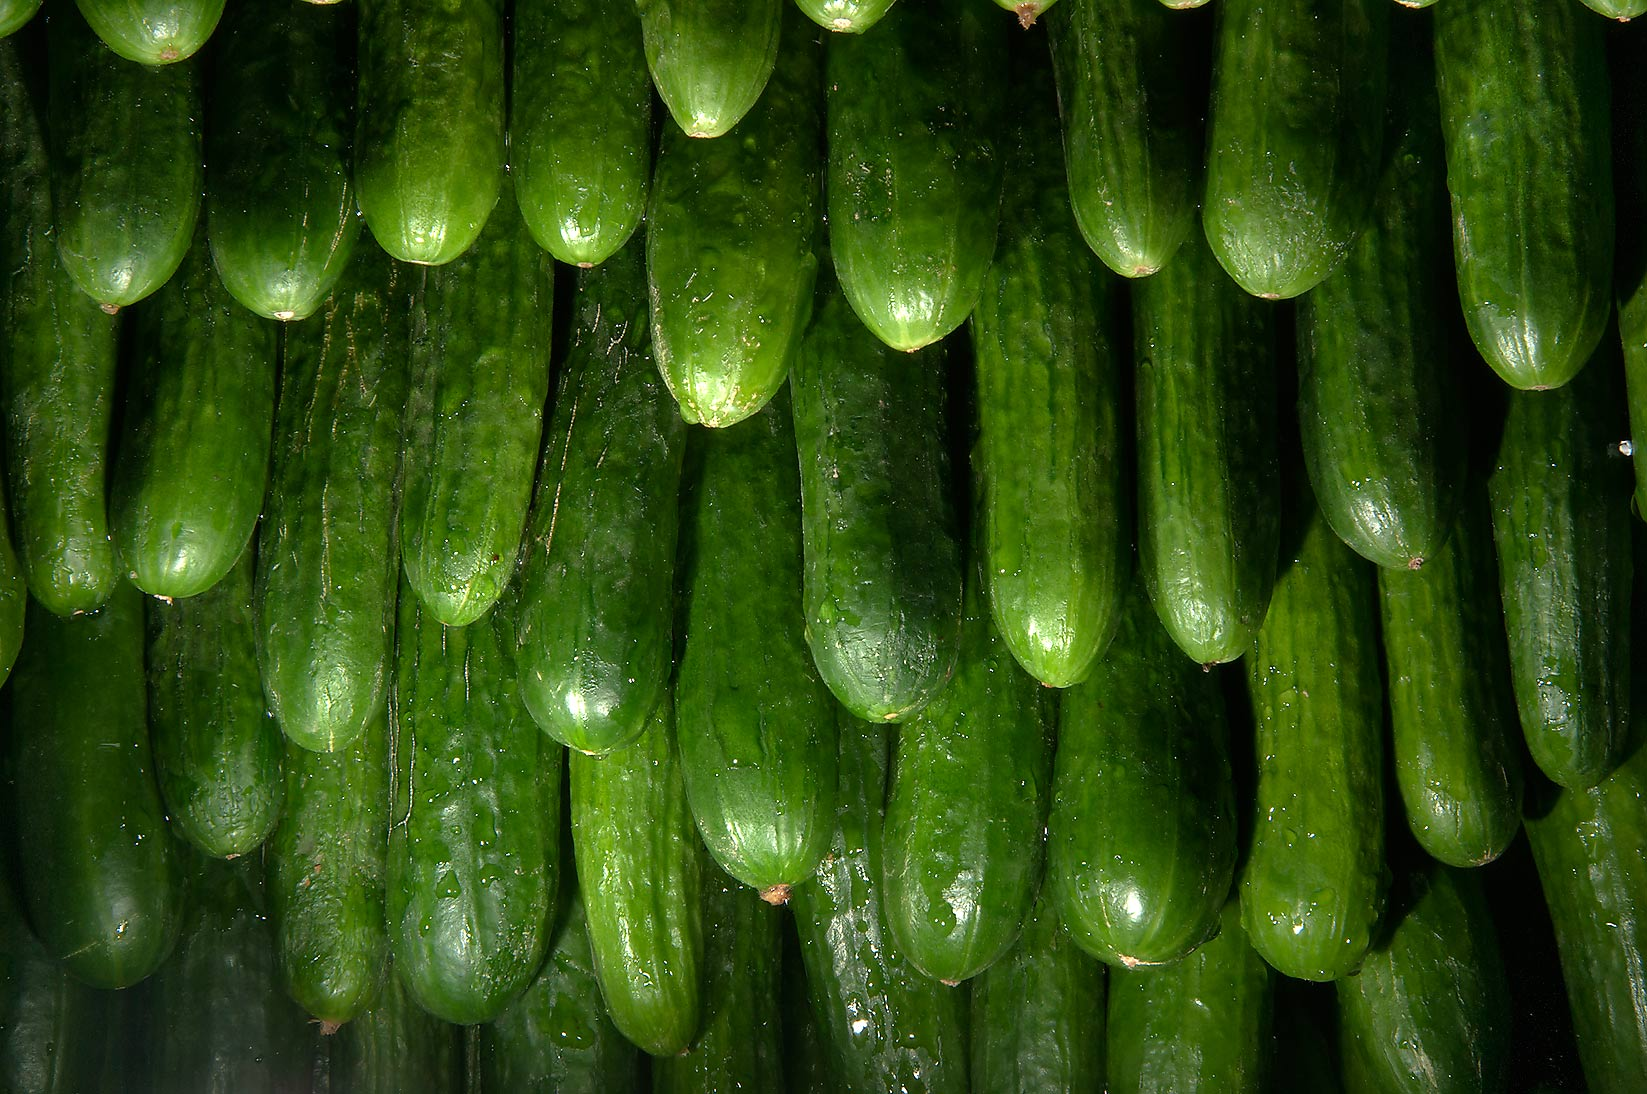 Stack of cucumbers in Vegetable Market, Wholesale Markets area. Doha, Qatar